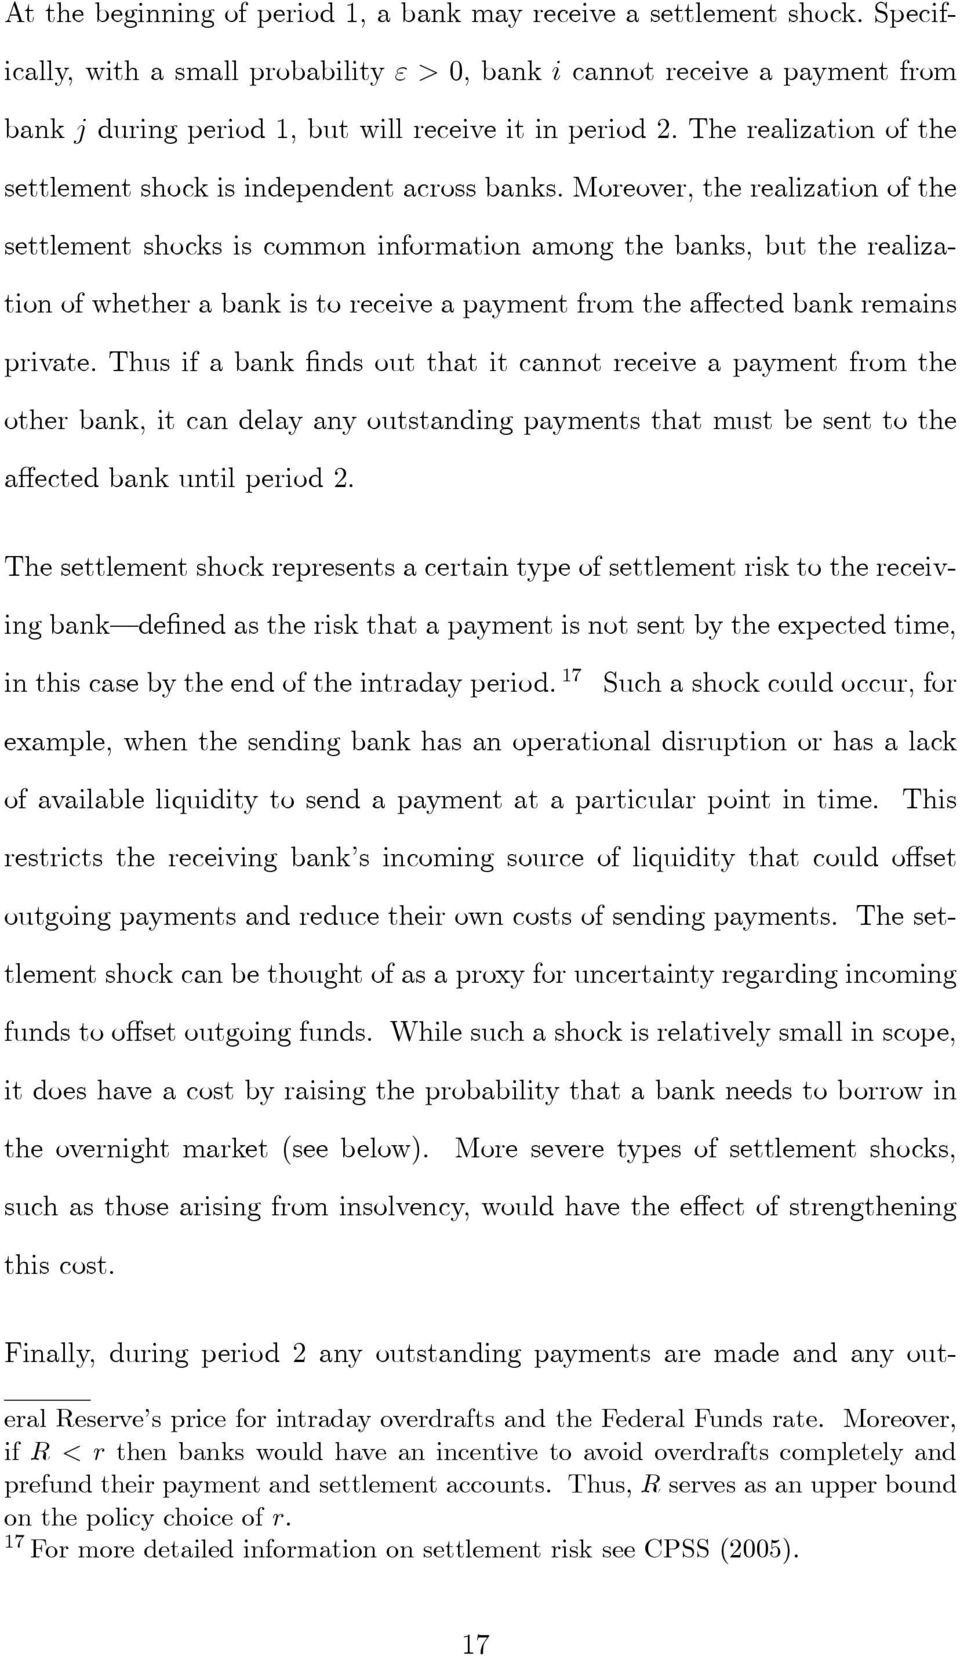 The realization of the settlement shock is independent across banks.